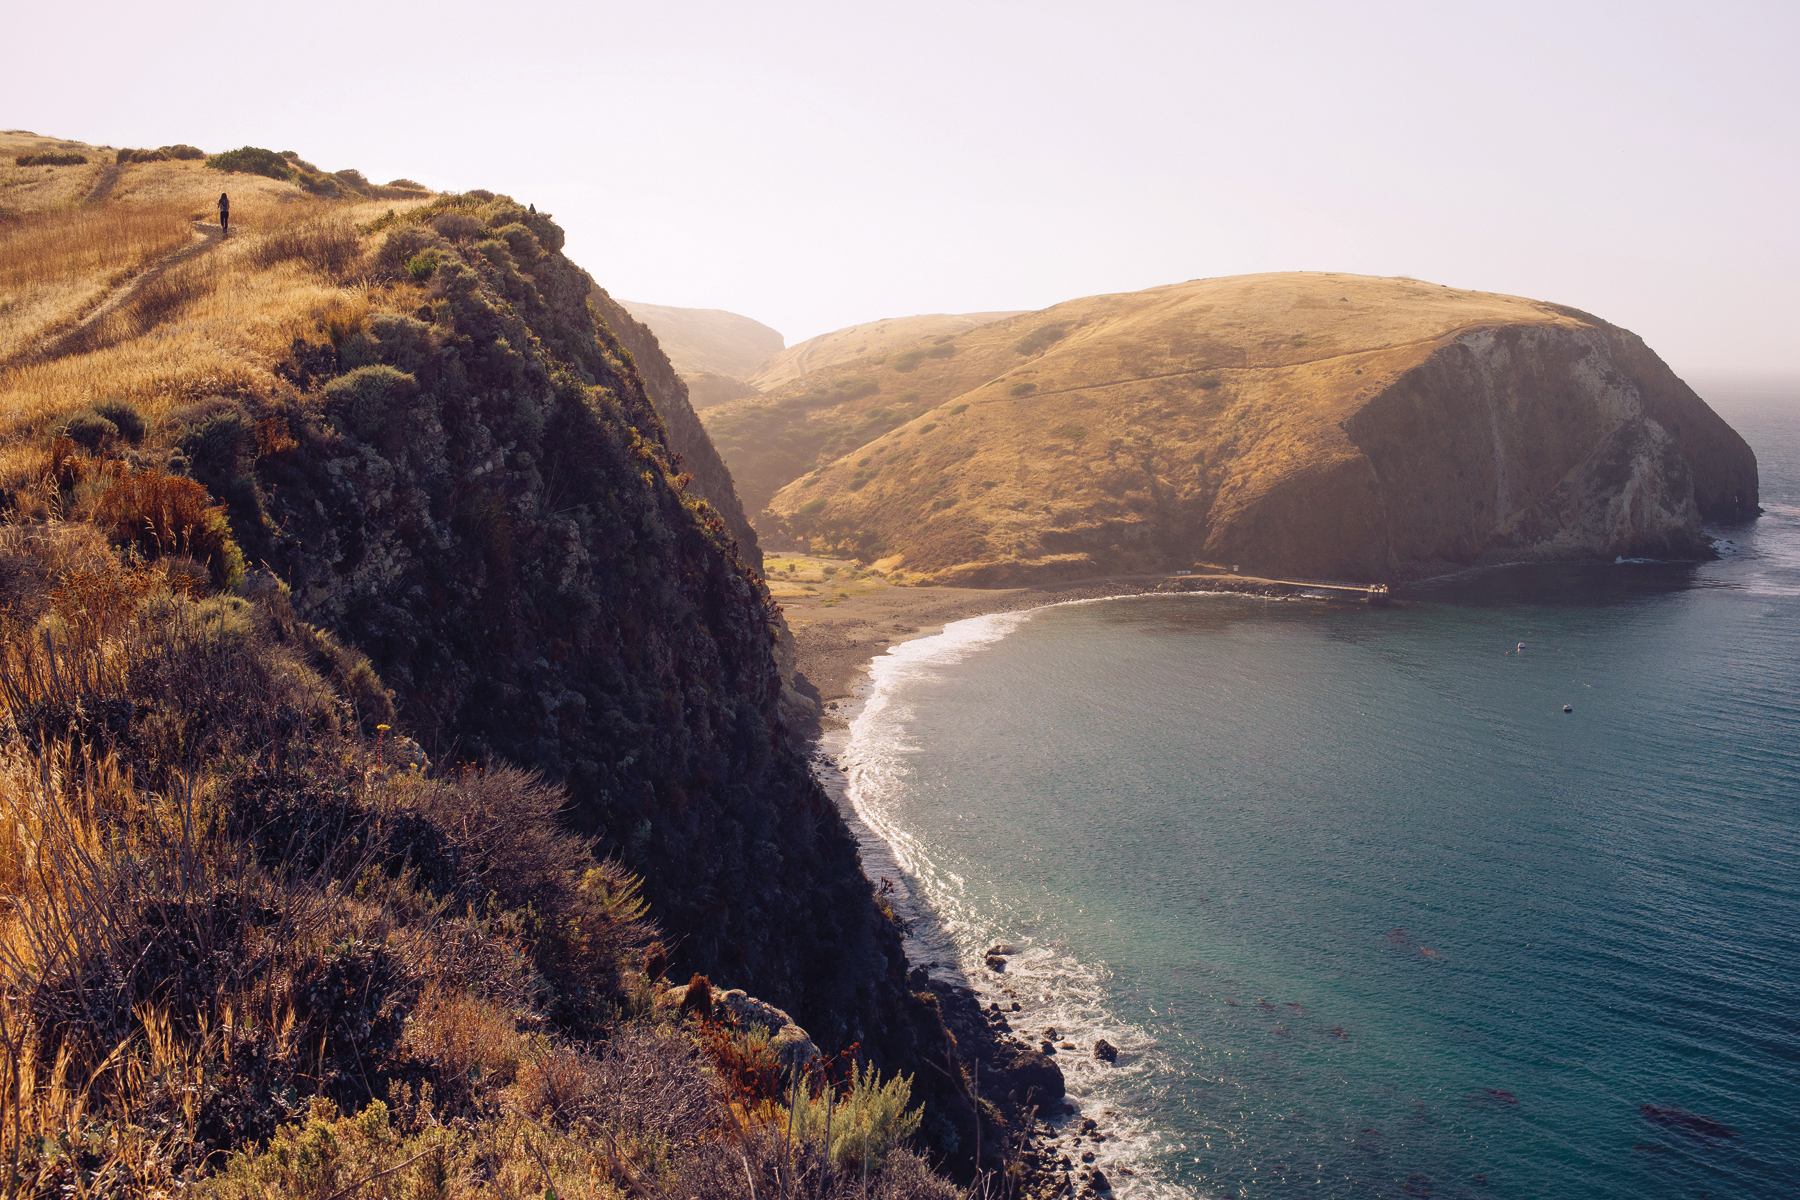 Despite their primarily pristine and wild nature, many of the Channel Islands' native vegetation communities still exhibit the subdued signs of a long ecological recovery. For instance, in 1999, the last remaining feral sheep were captured from Santa Cruz Island, bringing to end a nearly 200-year history of livestock grazing.